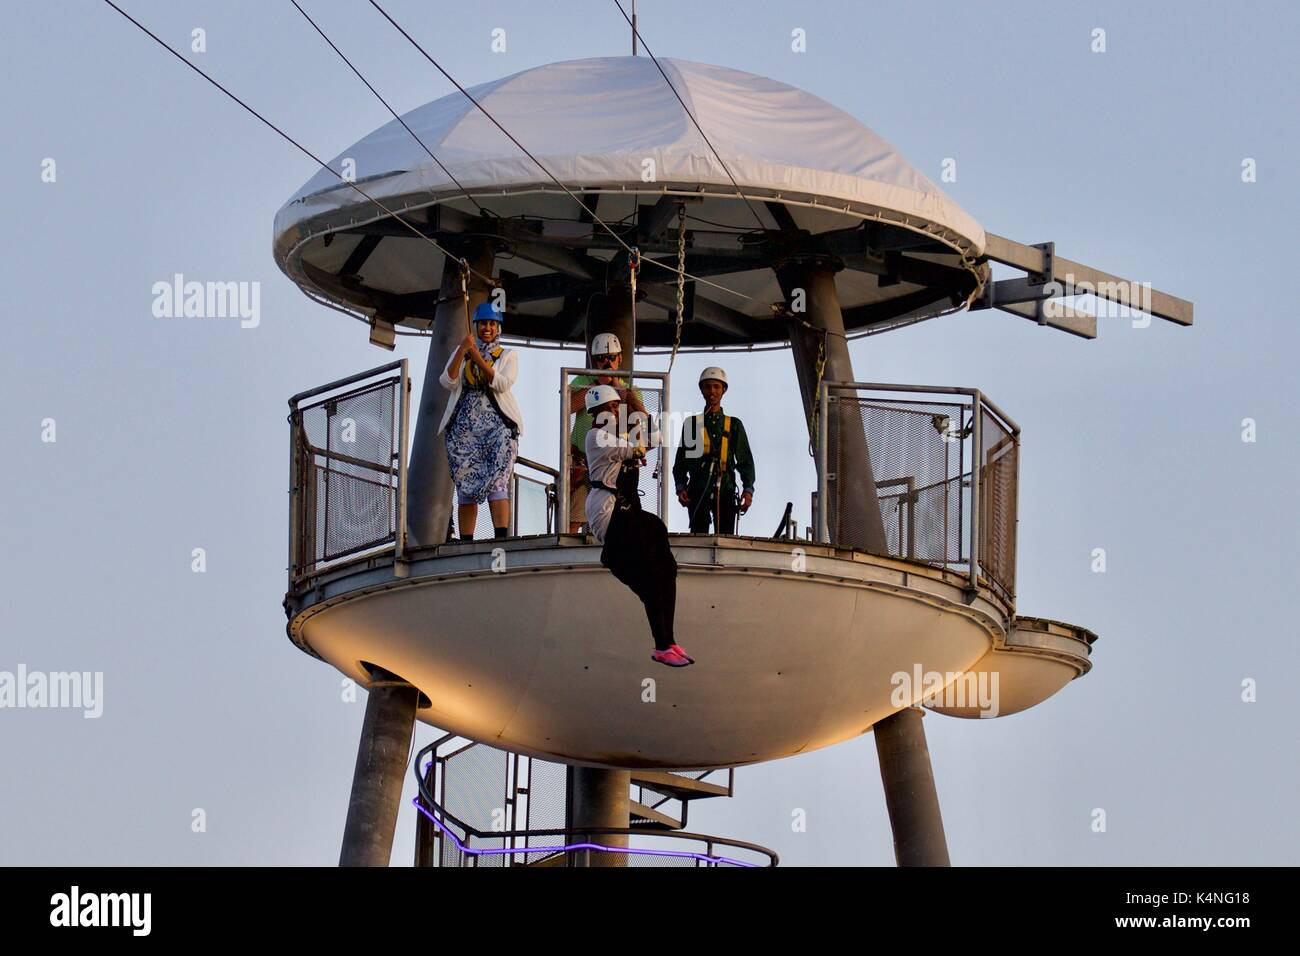 Thrill-seekers on Bournemouth zip wire - Stock Image